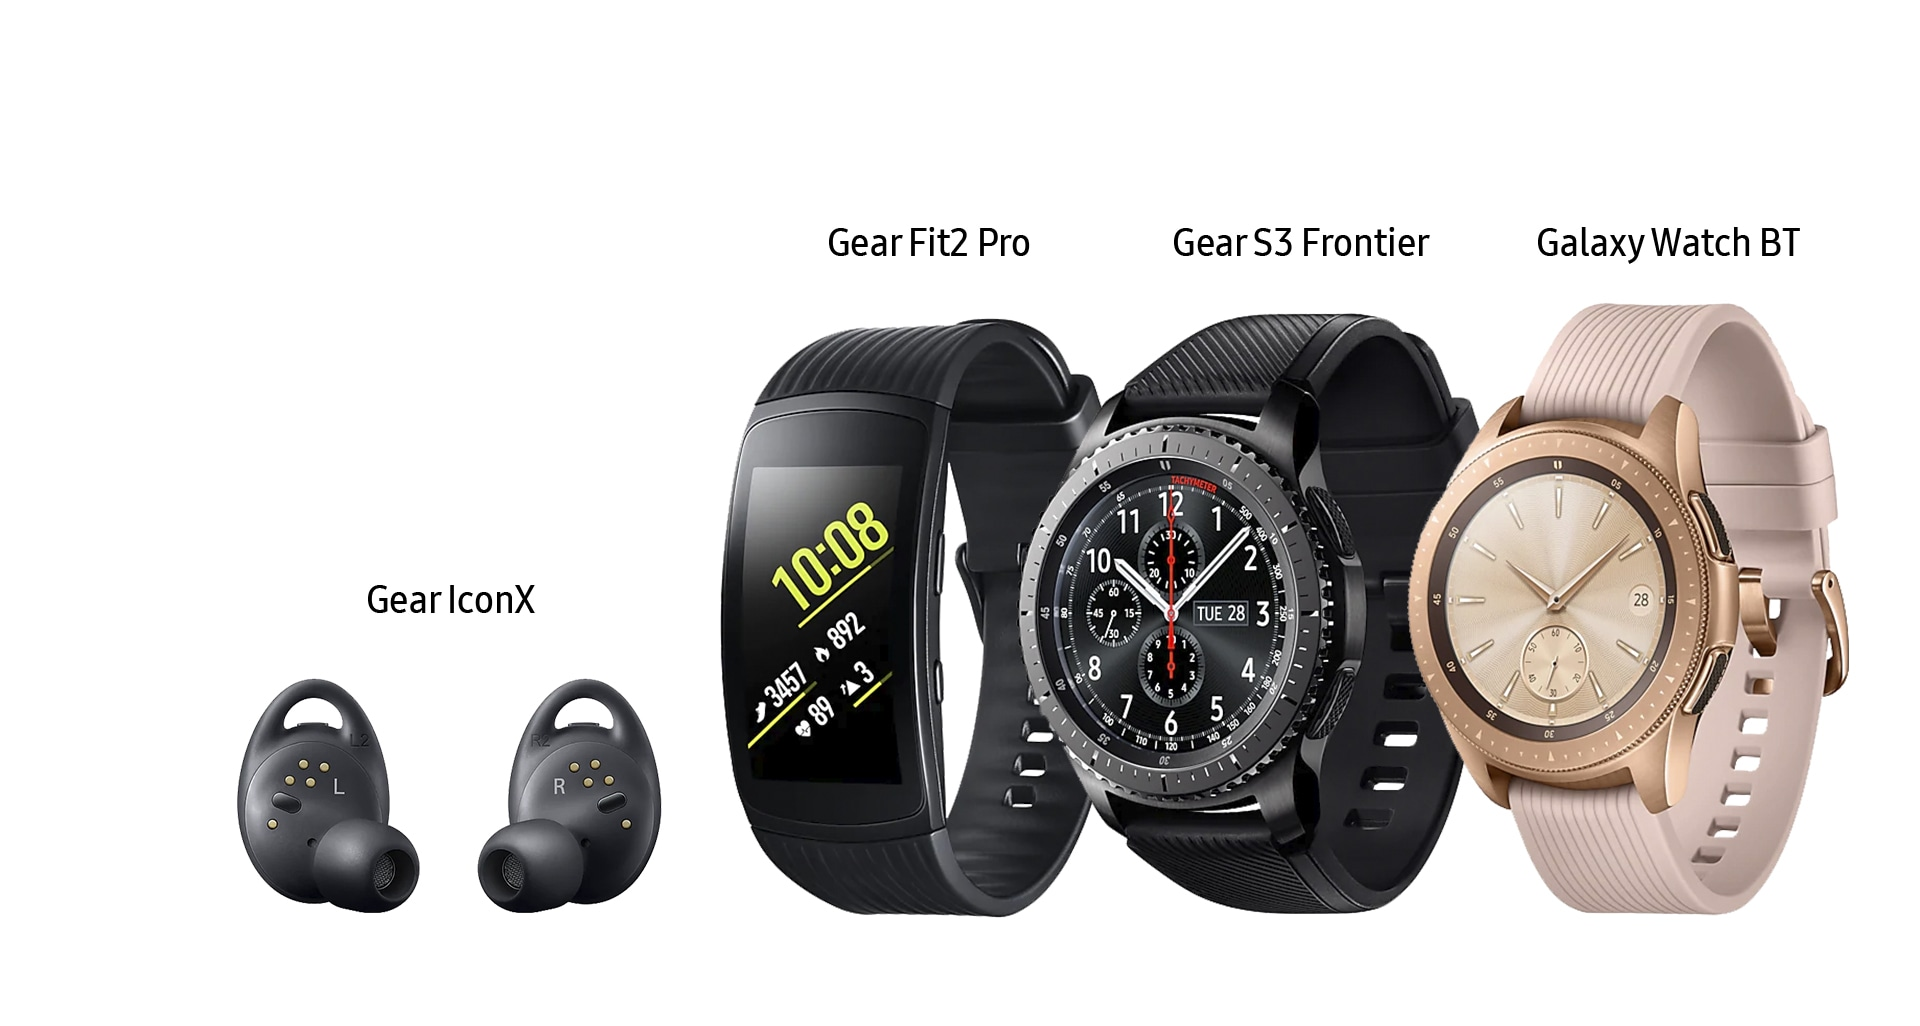 Imagem do Gear IconX, Gear Fit2 Pro, Gear S3 Frontier e Galaxy Watch BT; todos da Samsung.